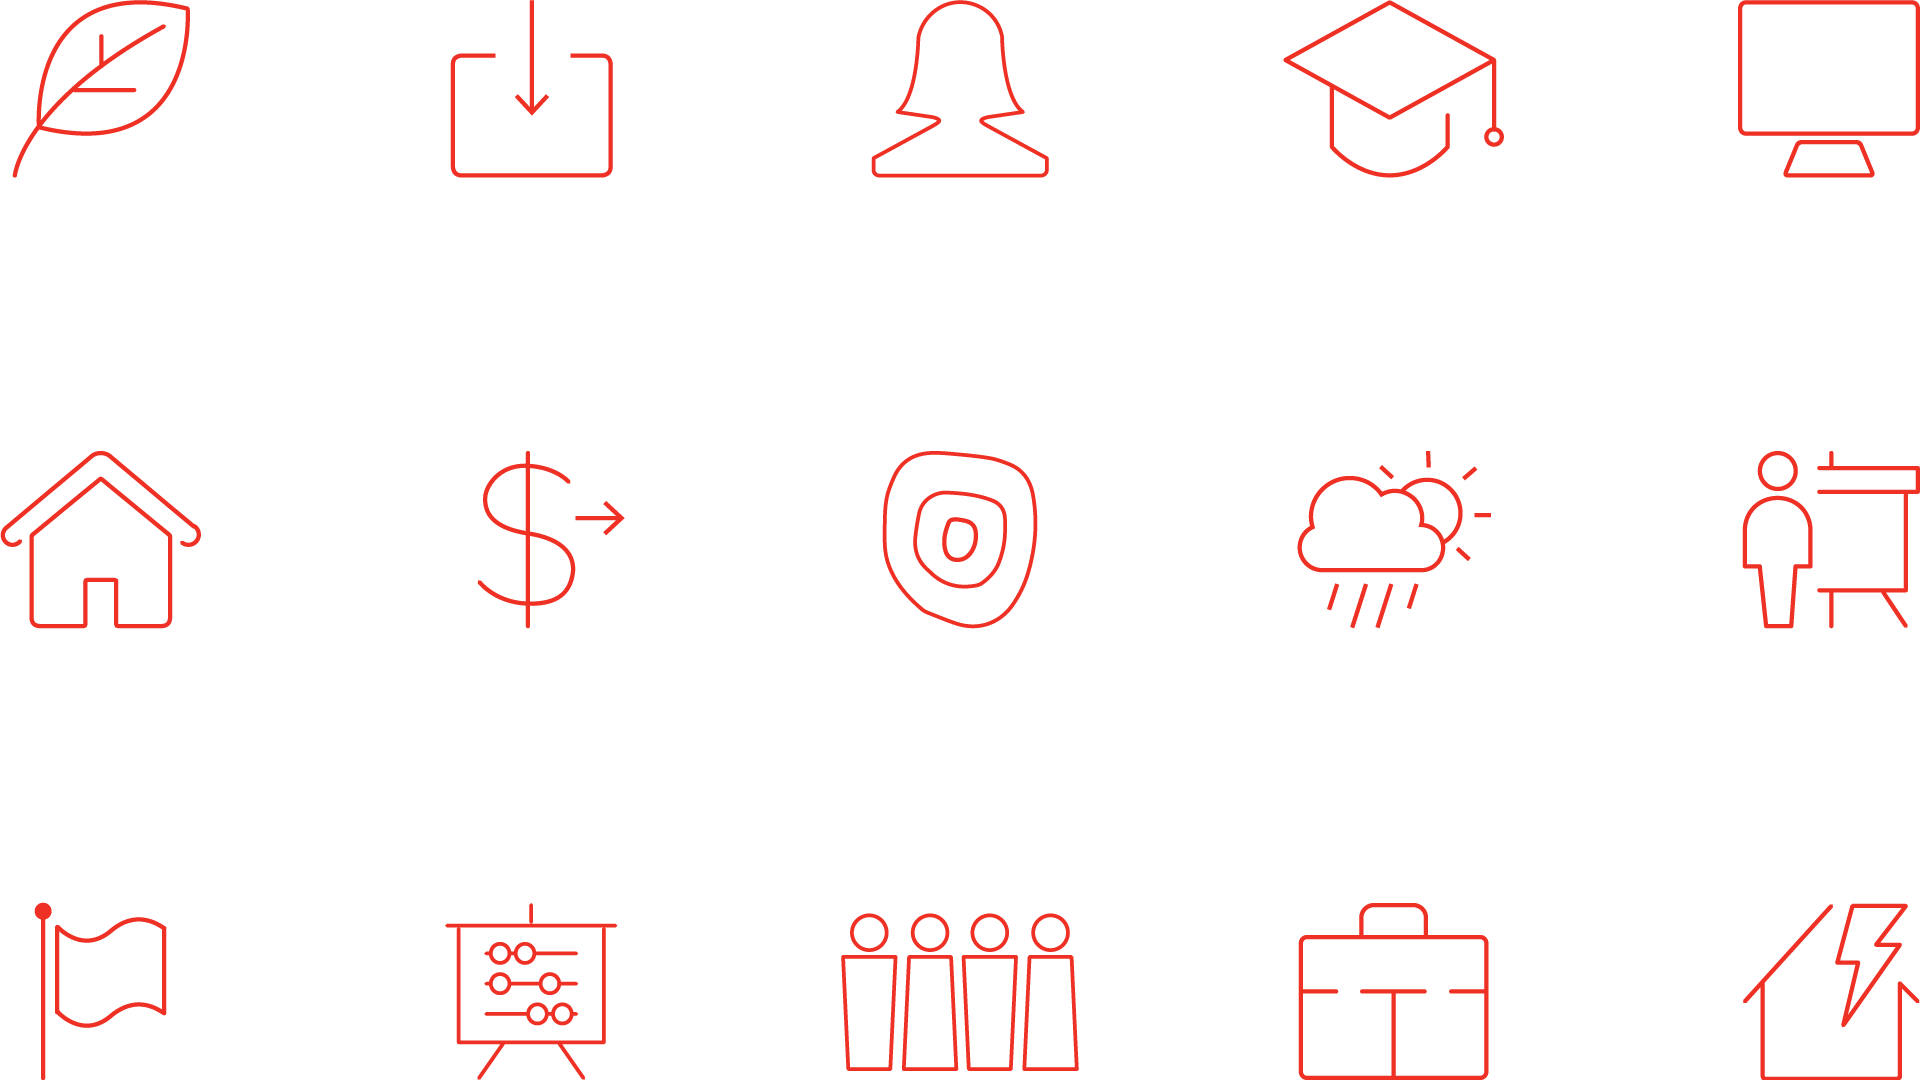 Westpac 2019 Annual Report. Iconography.